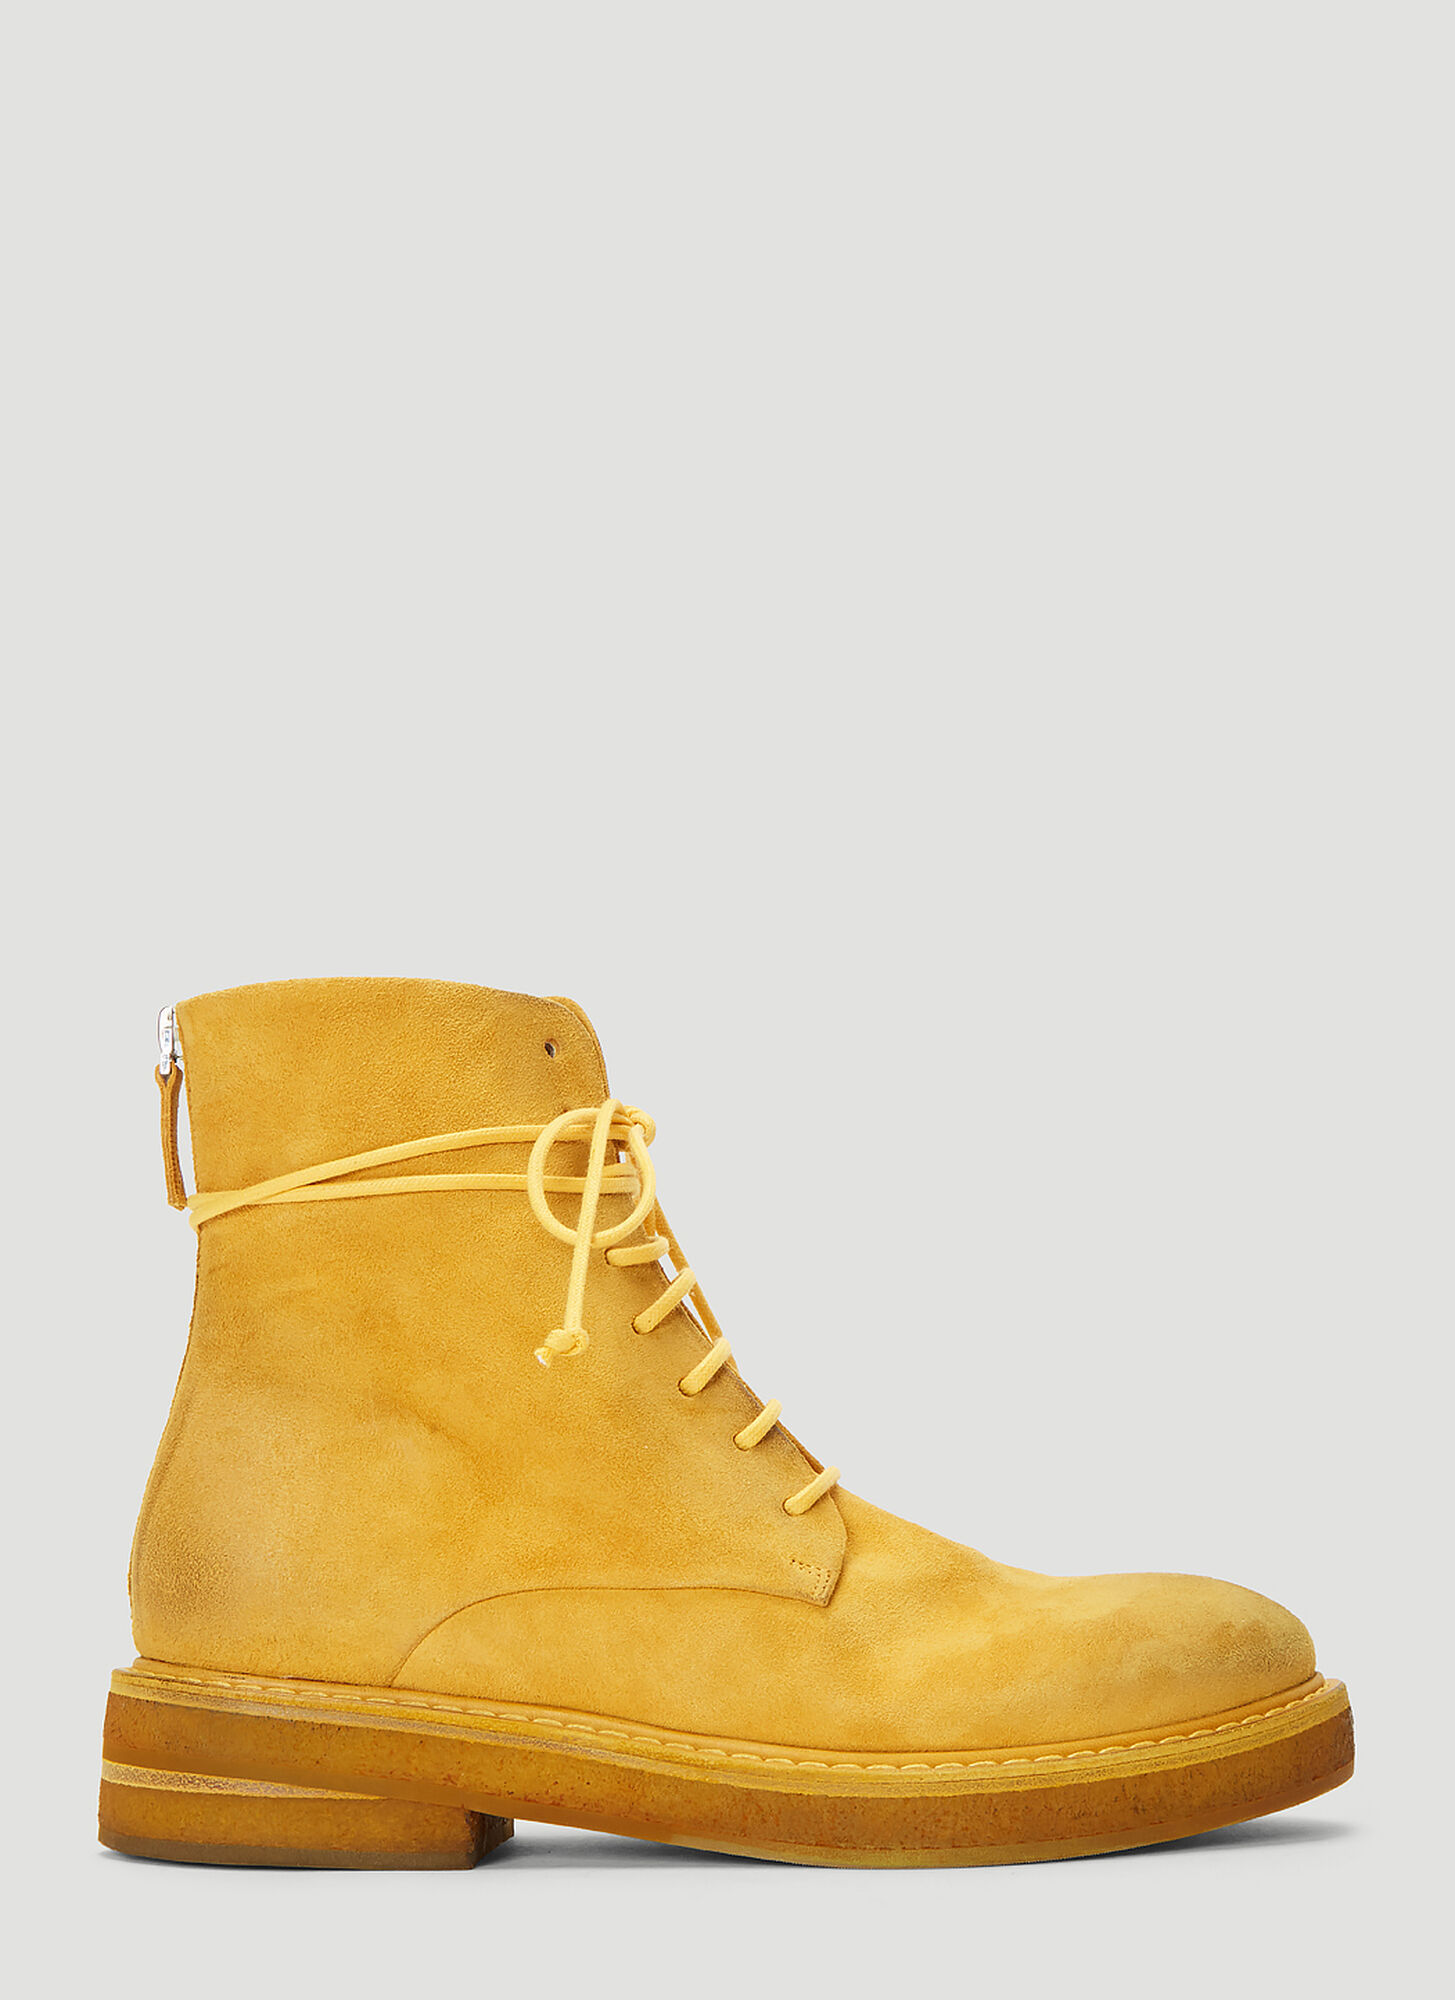 Marsell Parrucca Boot in Yellow